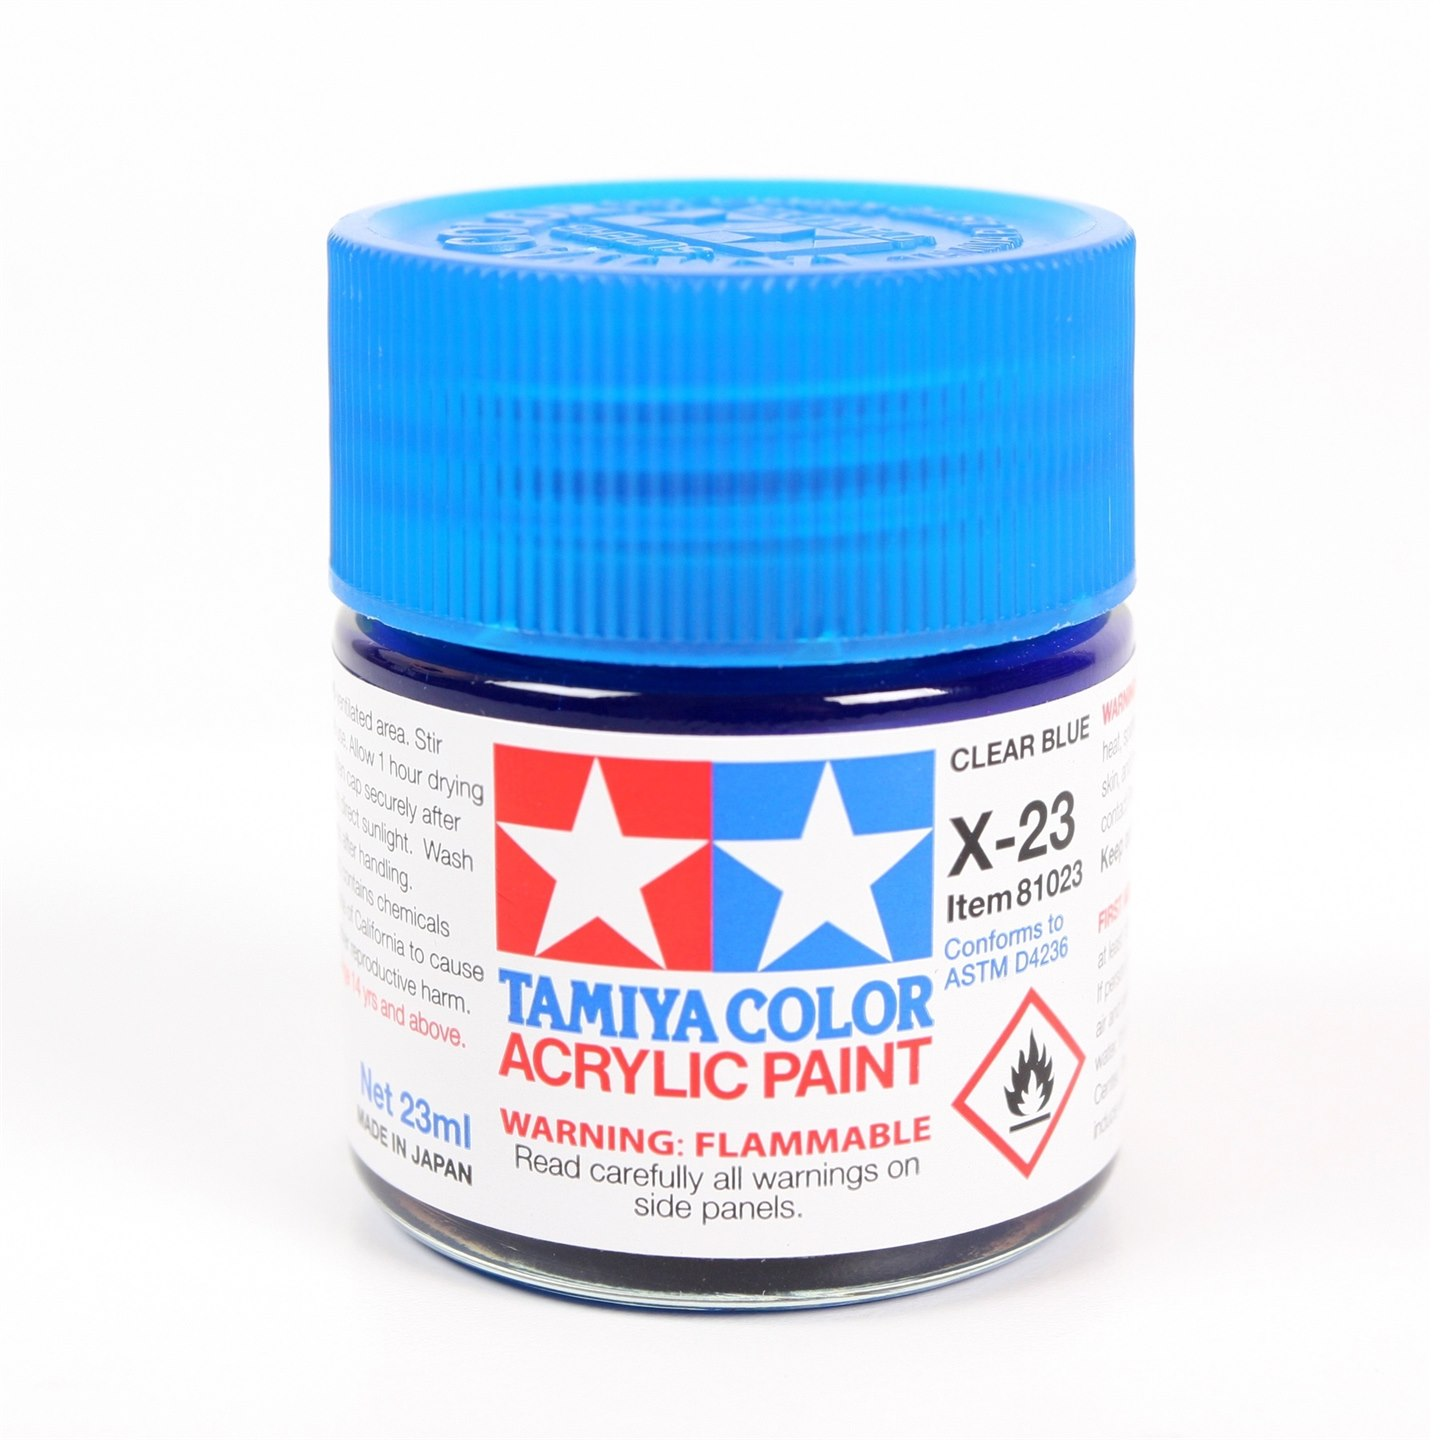 Tamiya Color Acrylic Paint X-23 (Clear Blue) (23ml)